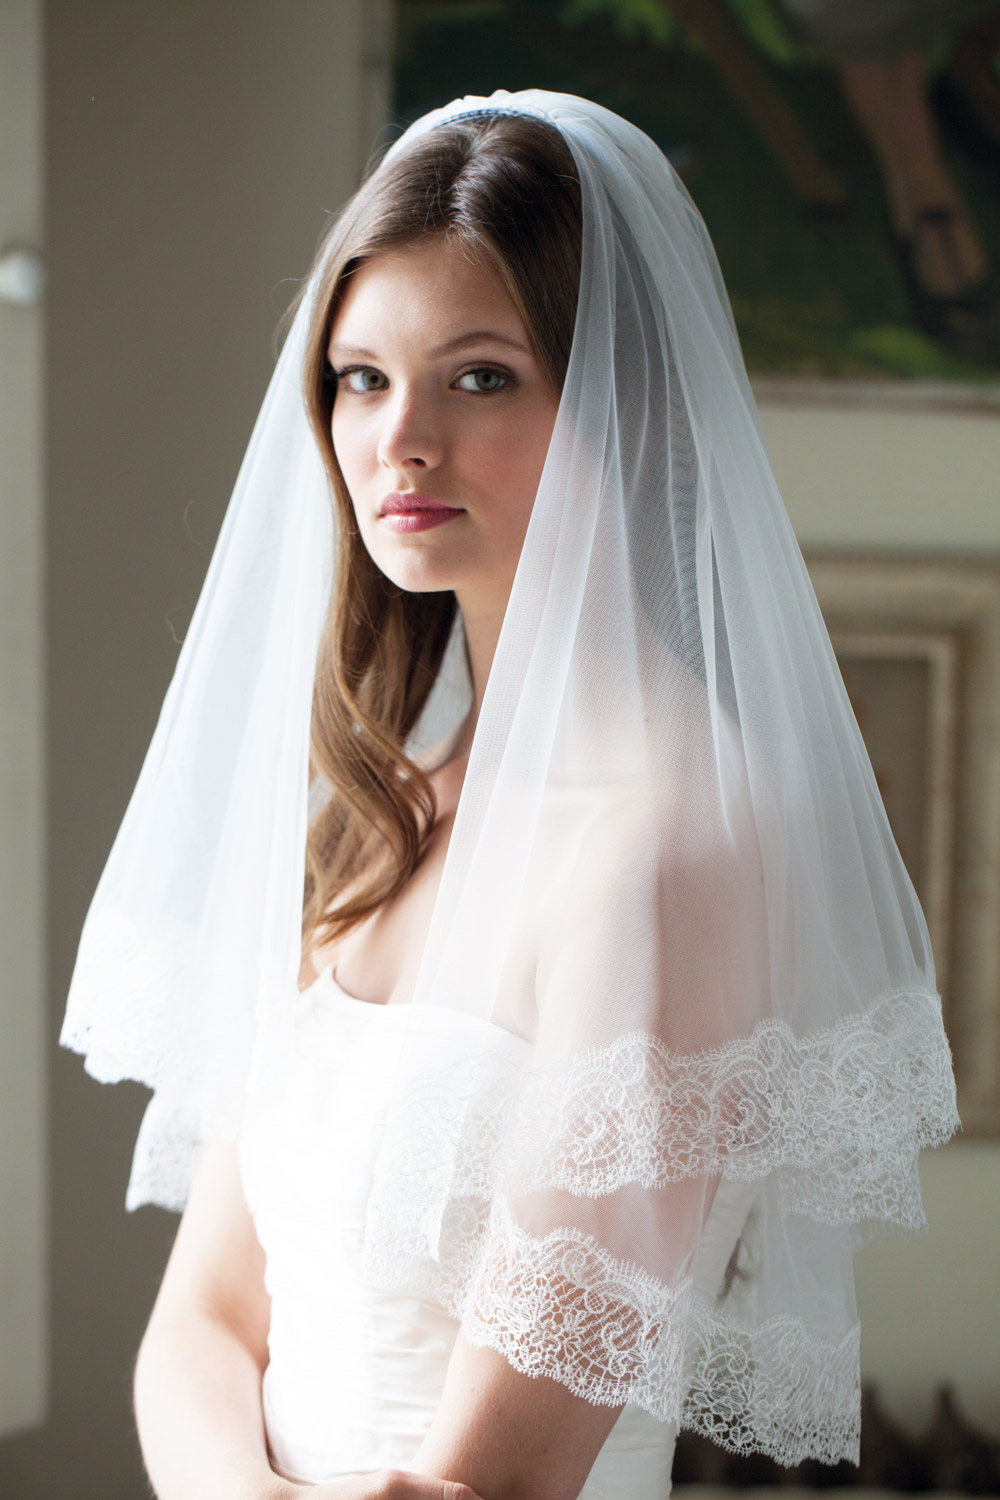 Style is forever. And having a vintage veil for the big day is a timeless classic.